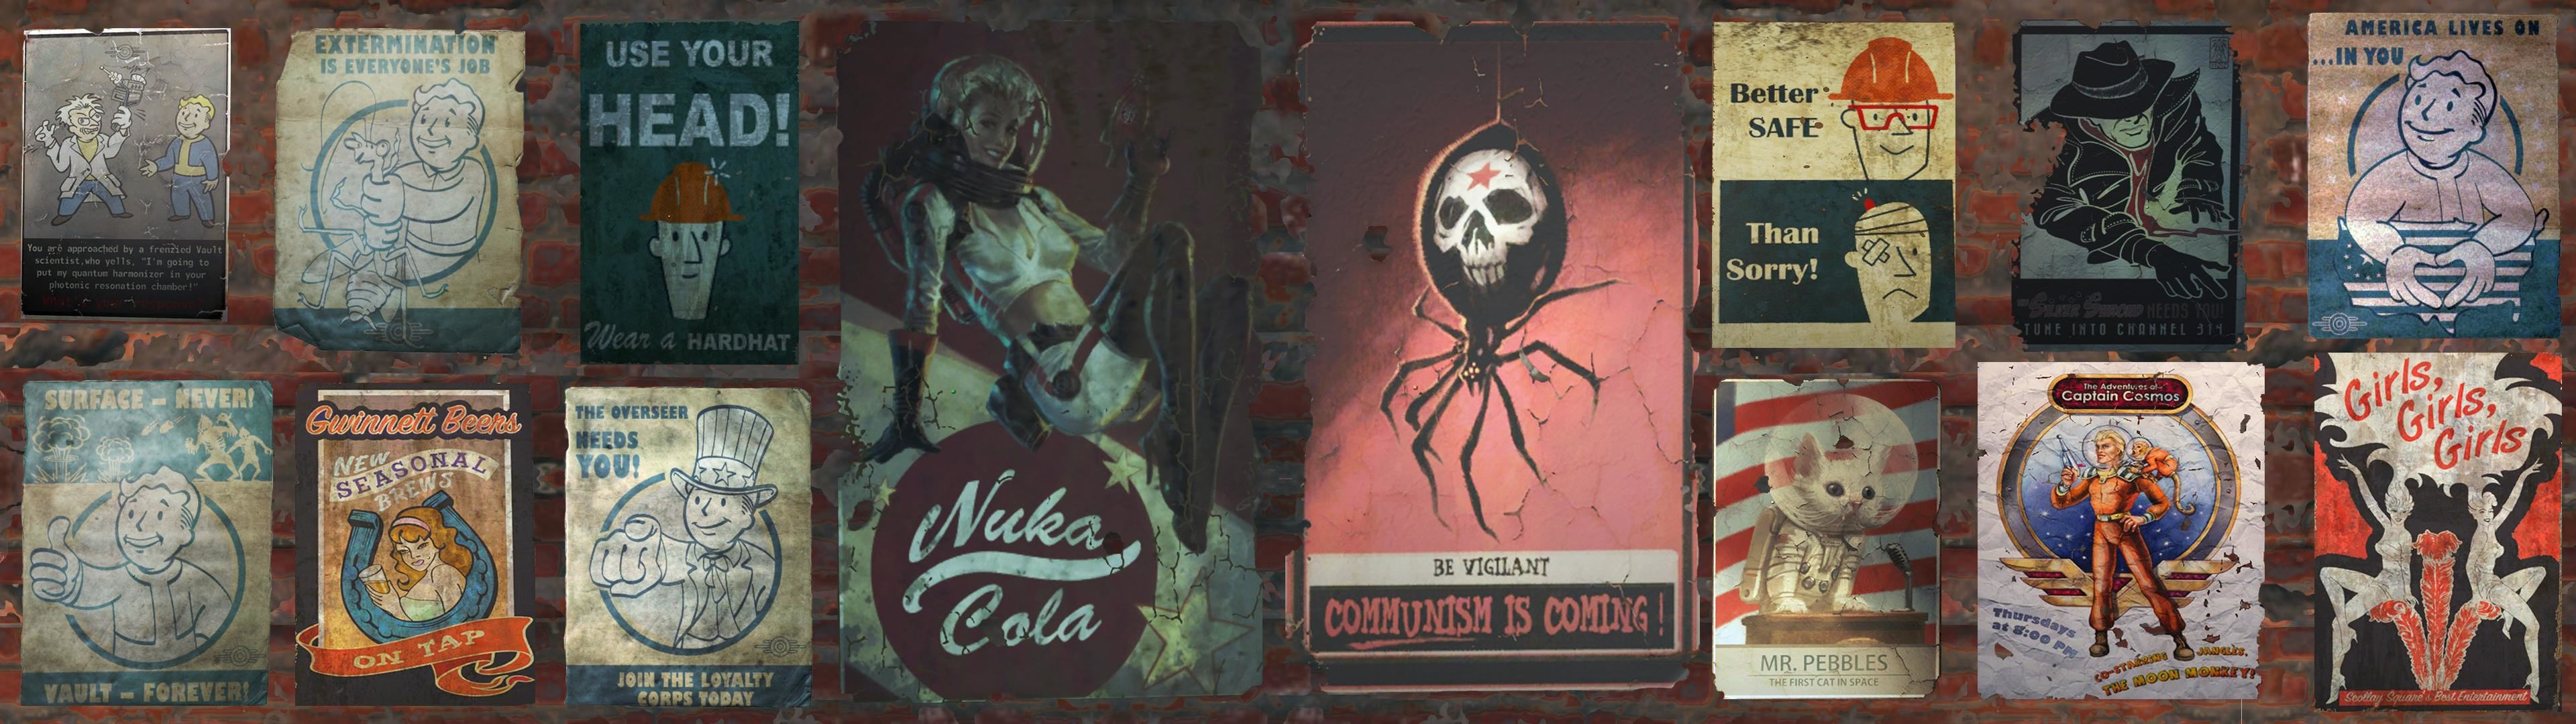 I made a dual screen wallpaper out of some of the posters that I  have come across in the wasteland.